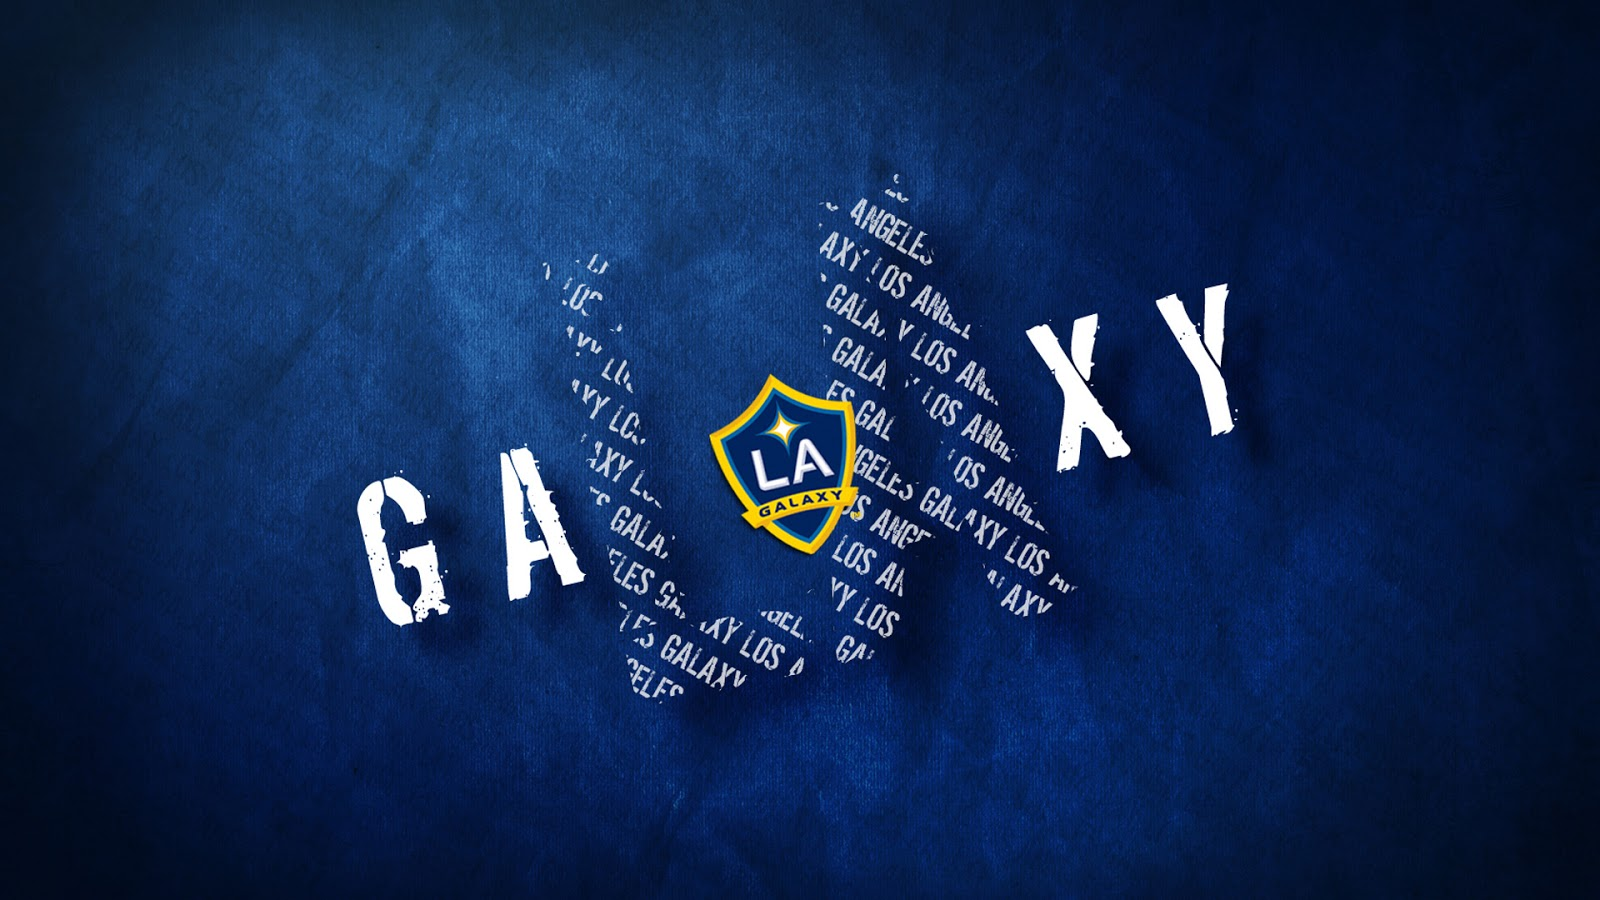 LA Galaxy 2013 Wallpapers HD Los Angeles Wallpapers HD Download 1600x900